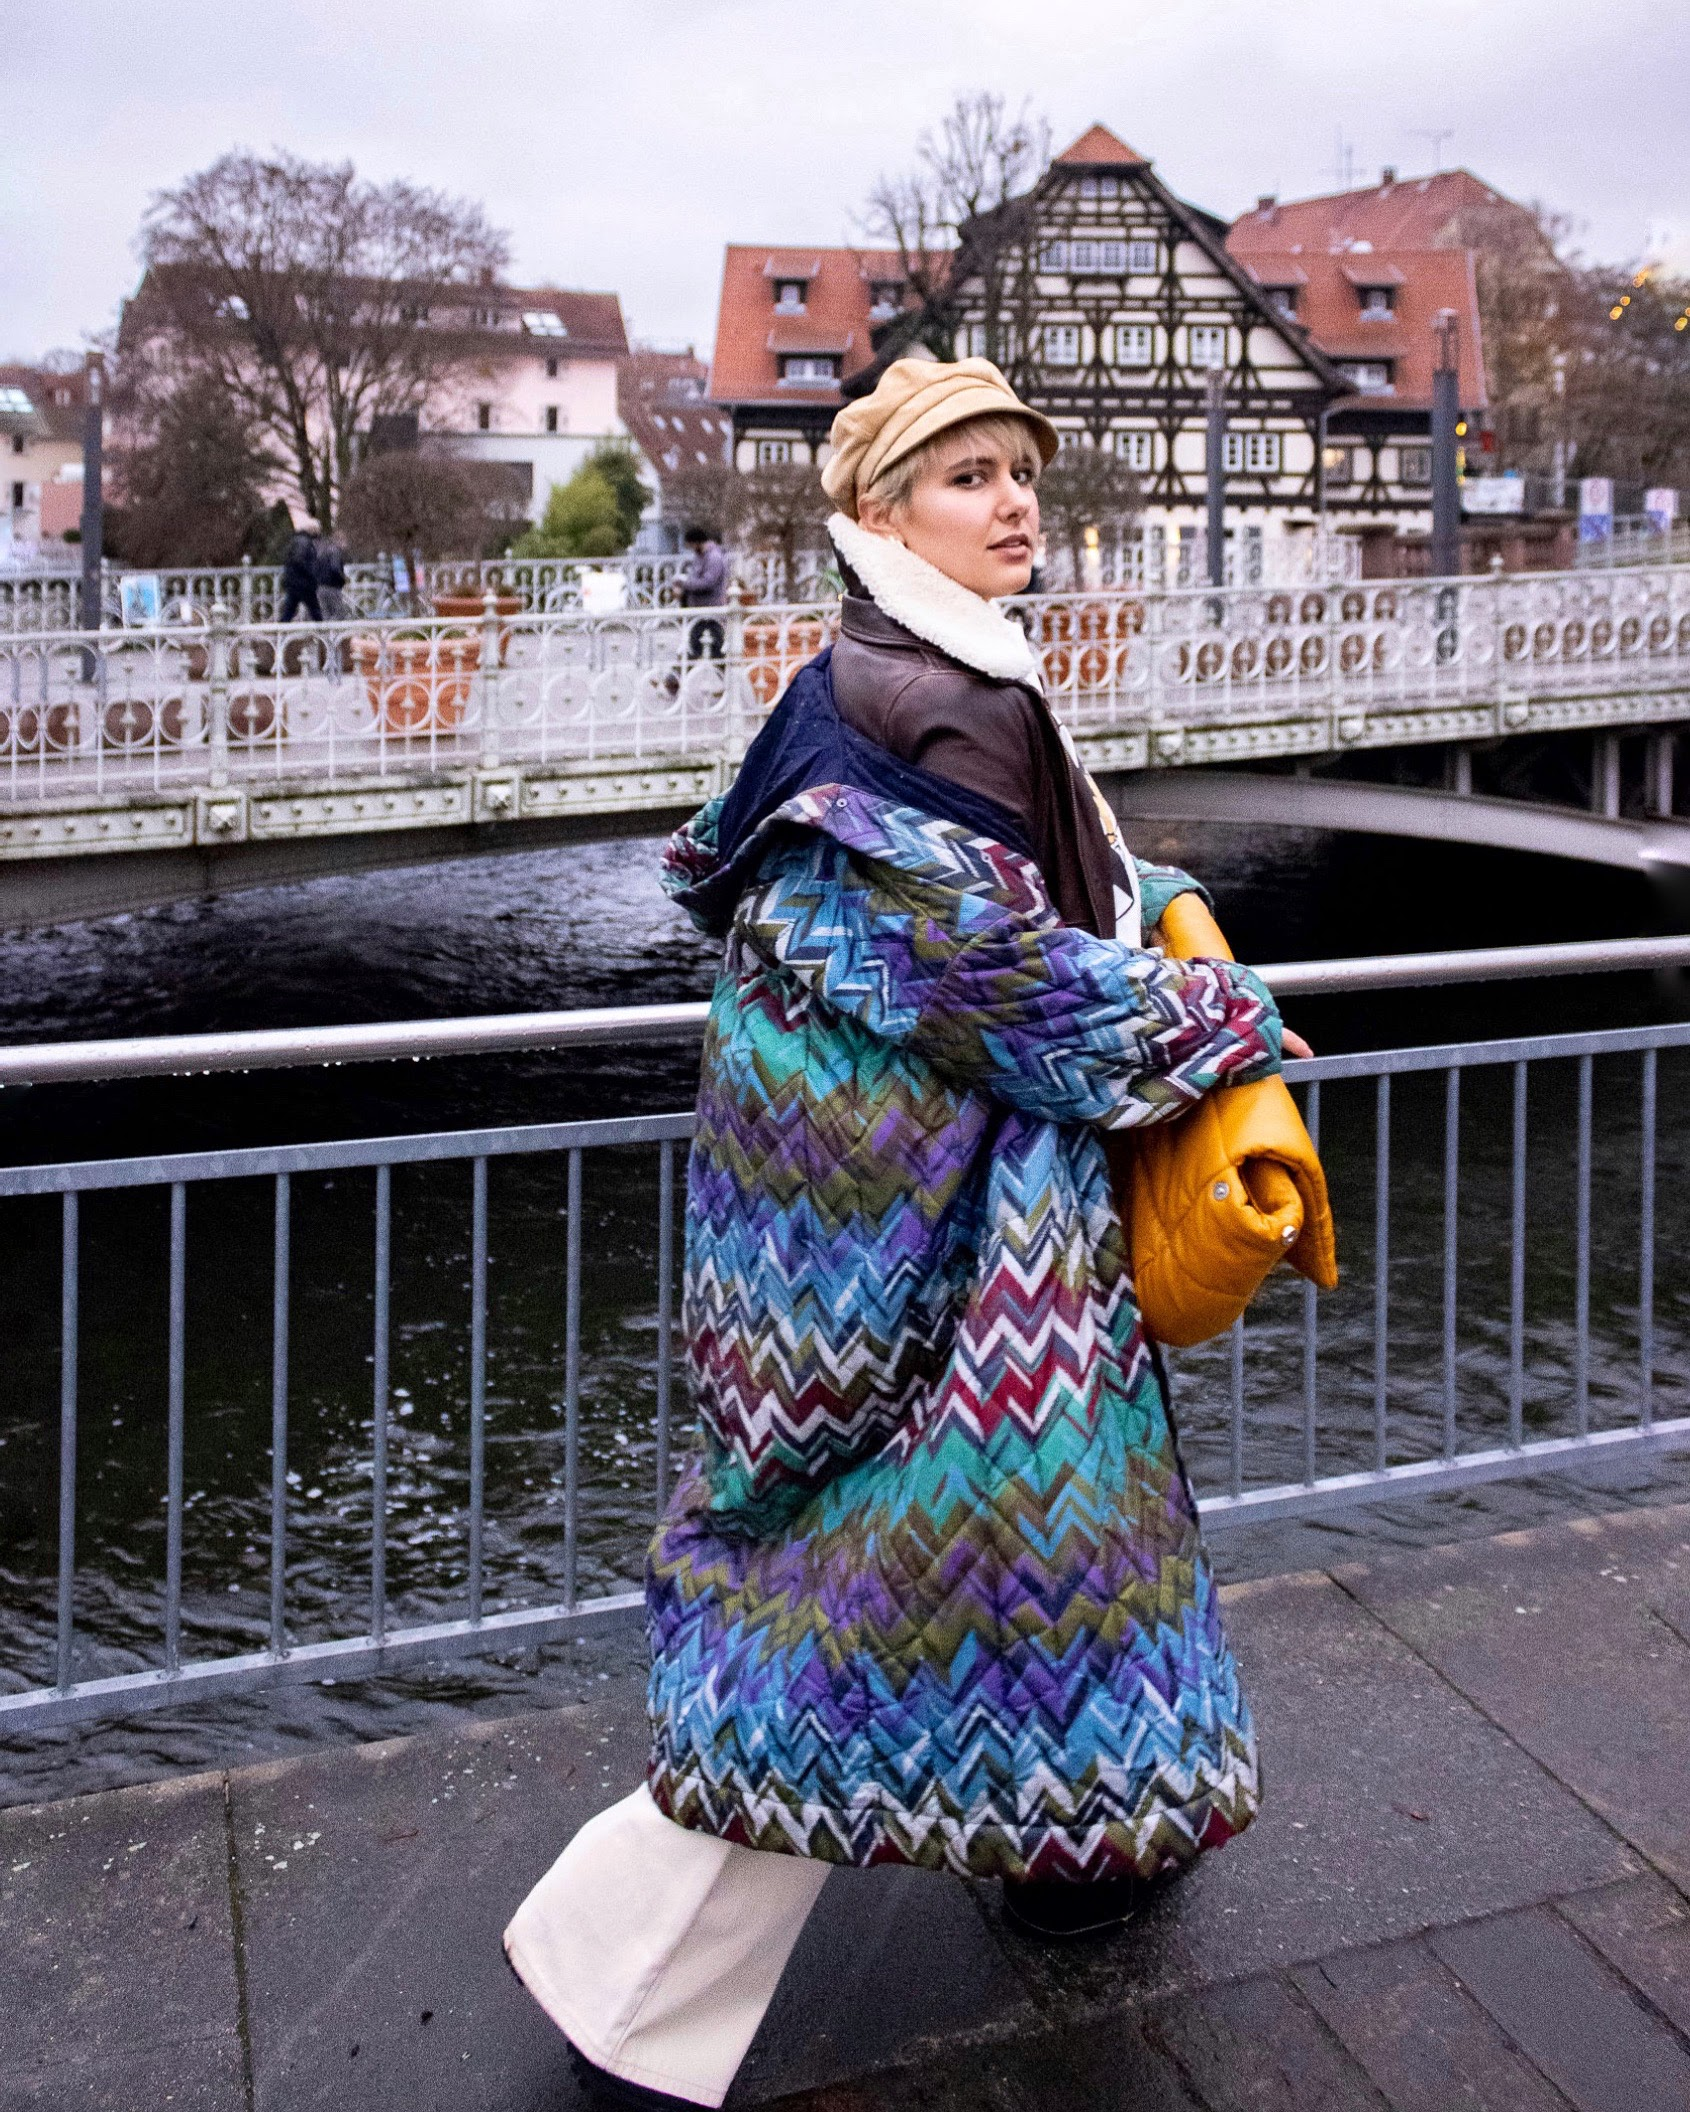 Statement Outerwear Outfit Challenge: Quilted Coats @RebeccaInEurope